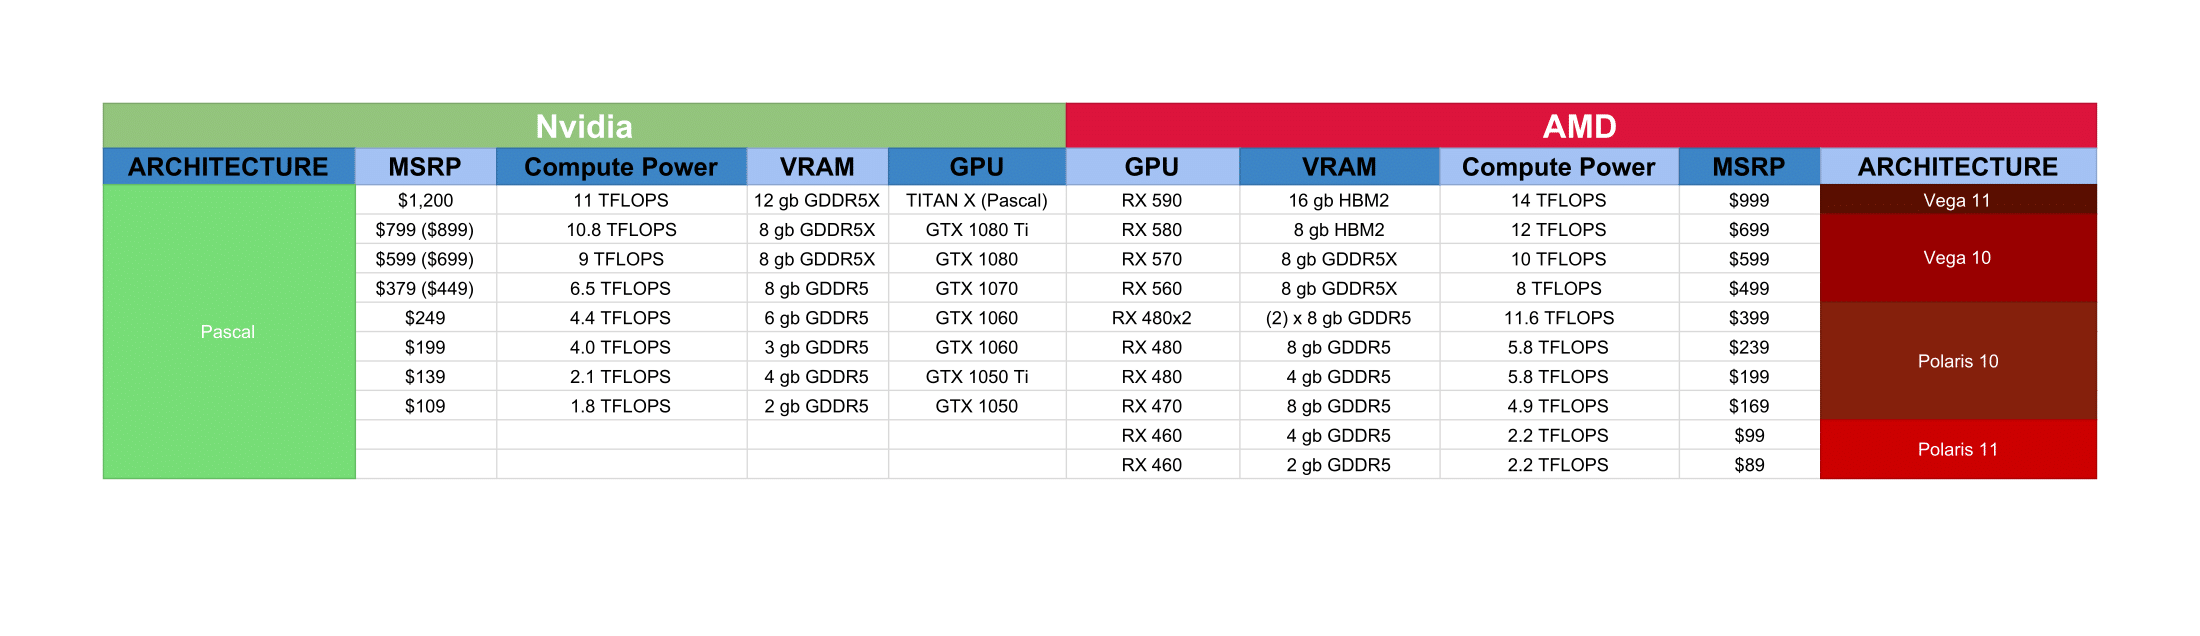 AMD vs Nvidia graphics cards - the state of play at the